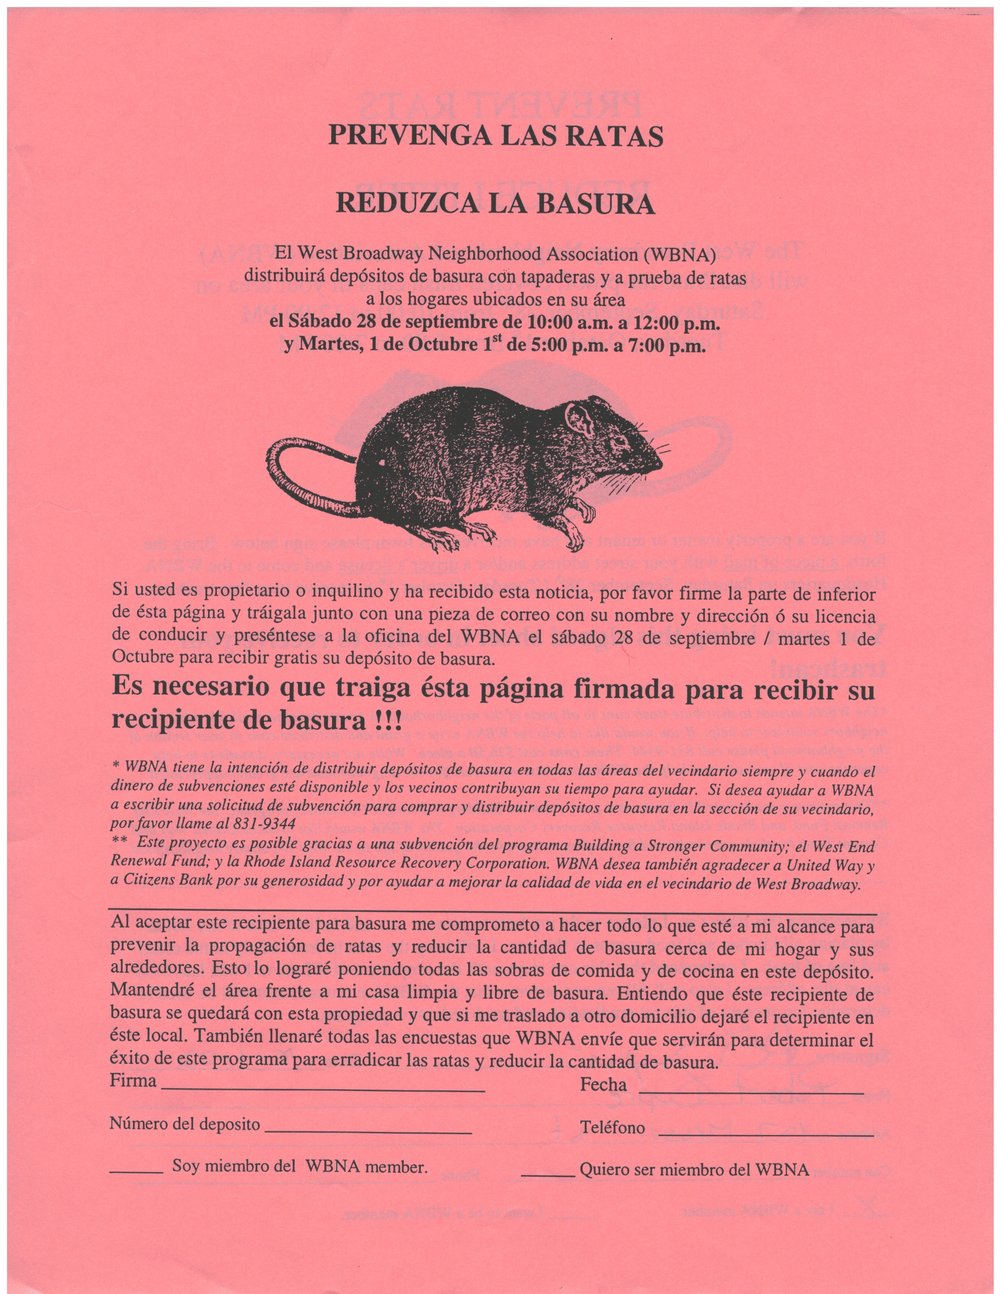 Rat-O-Rama volunteers went door to door distributing multi-lingual flyers and sign up forms to neighbors (2002)